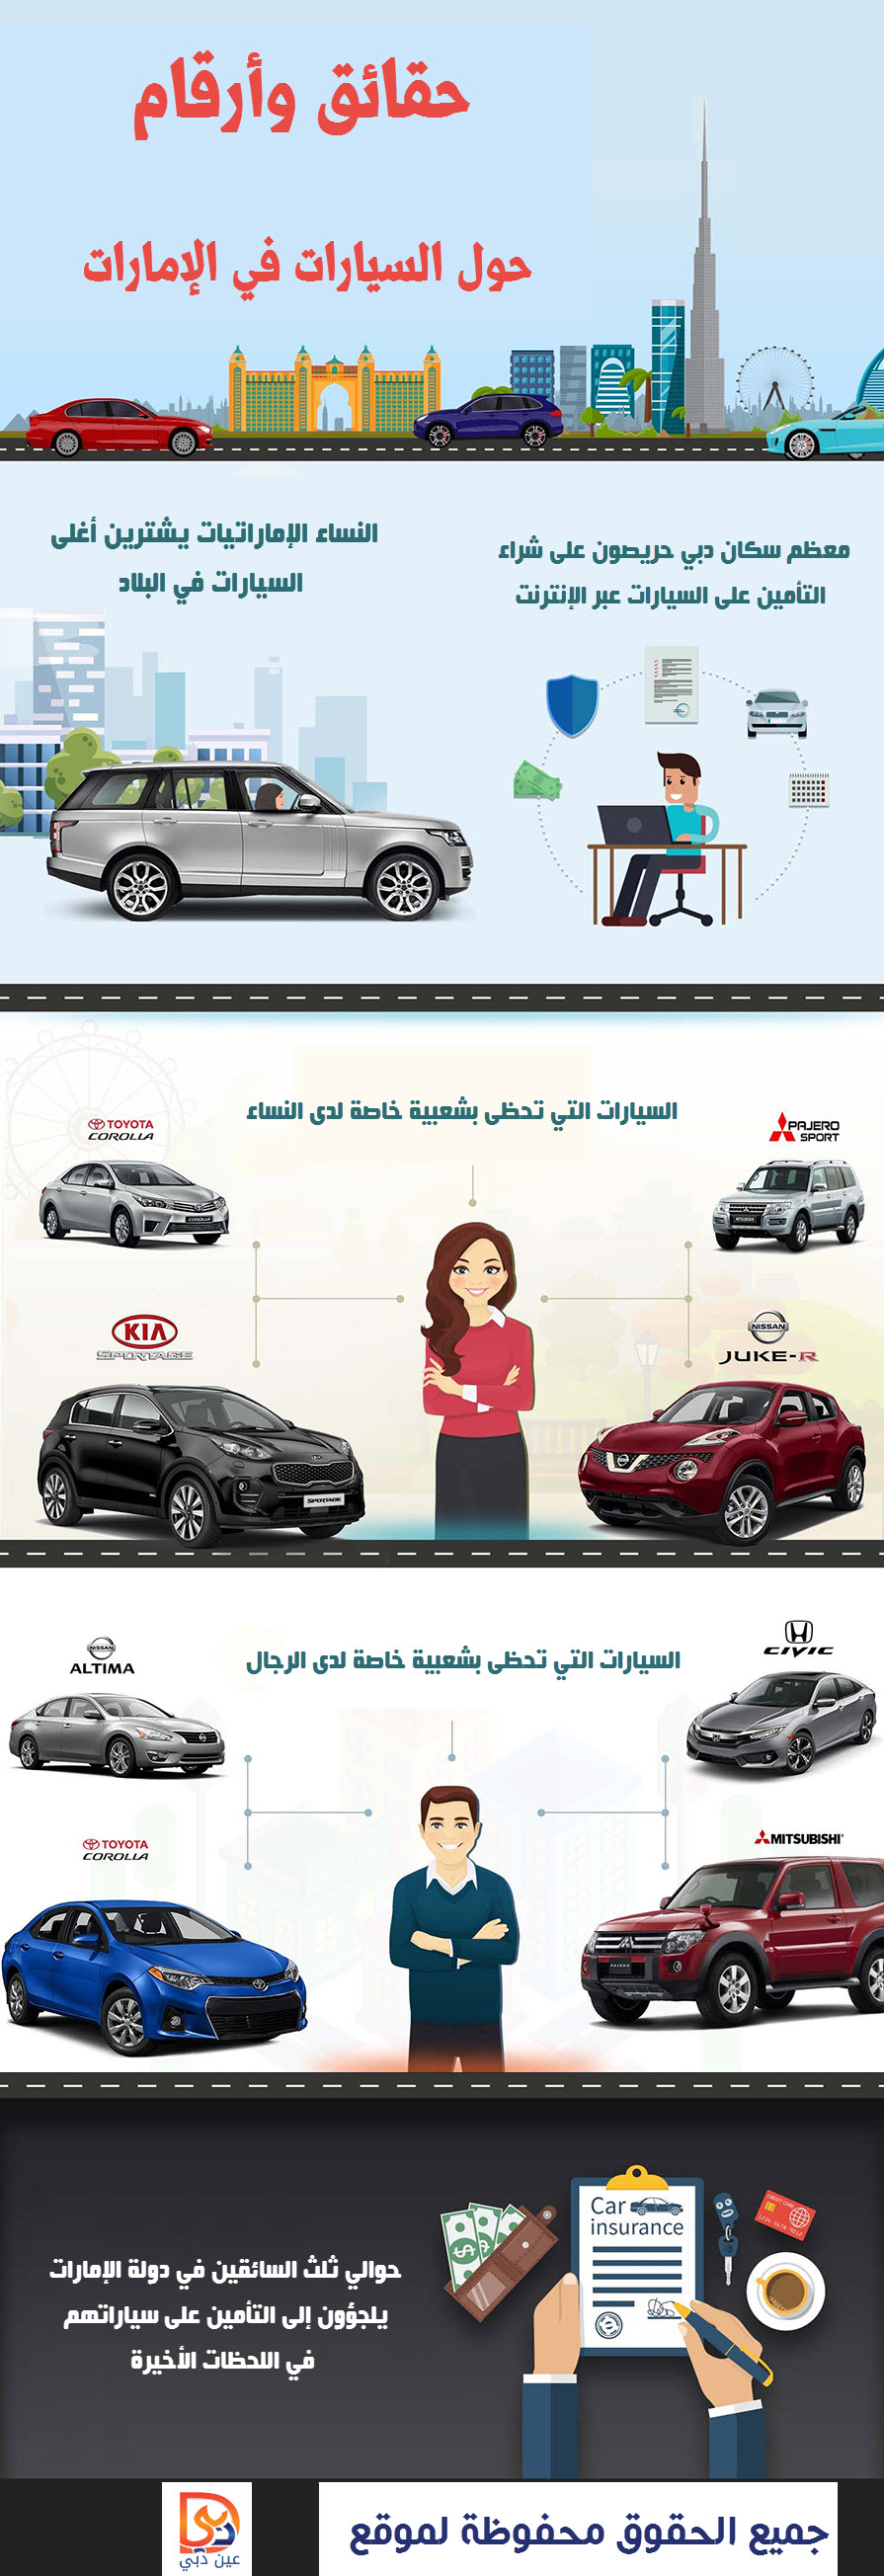 Who-Drives-the-Most-Expensive-Cars-in-the-UAE-Infographic